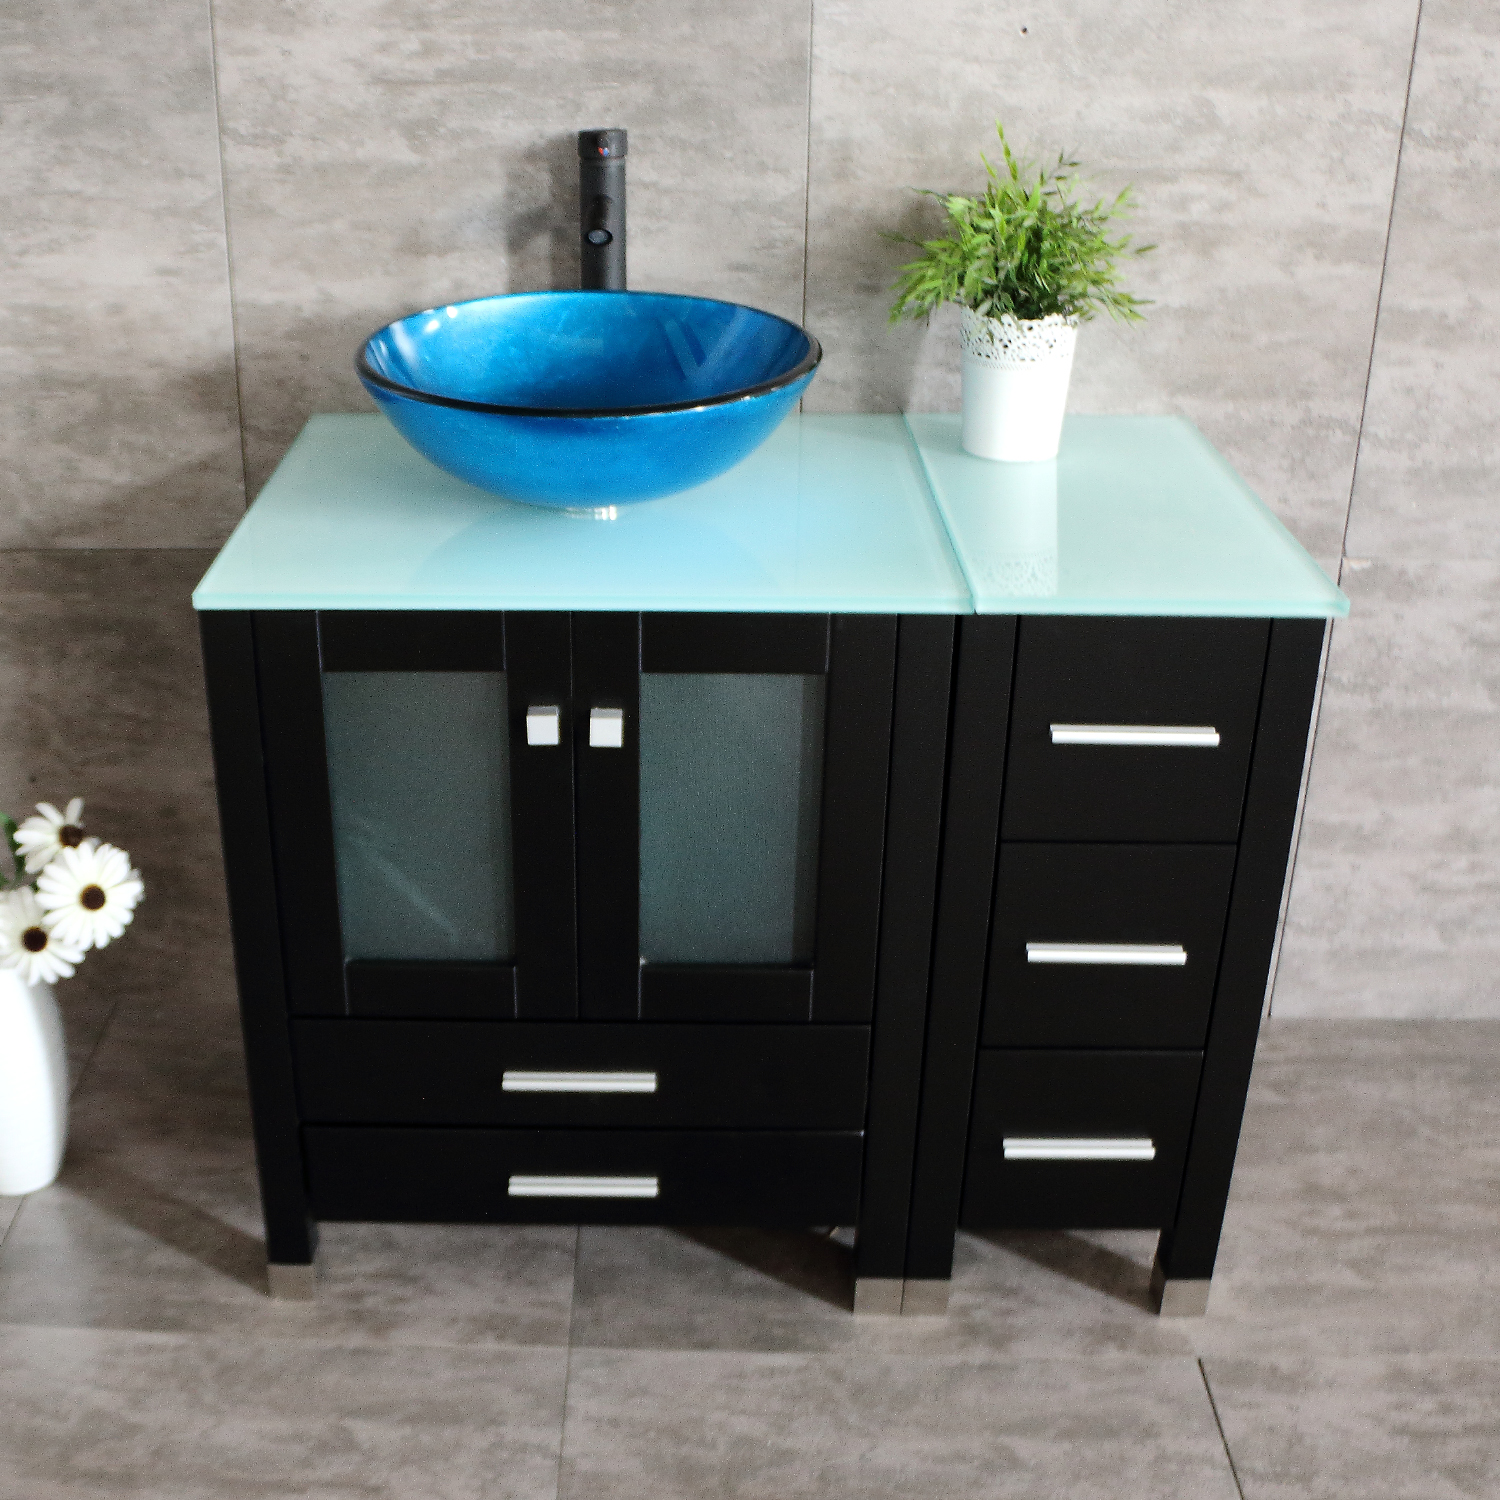 Bathroom Vanity 36 Quot Single Plywood Cabinet Glass Vessel